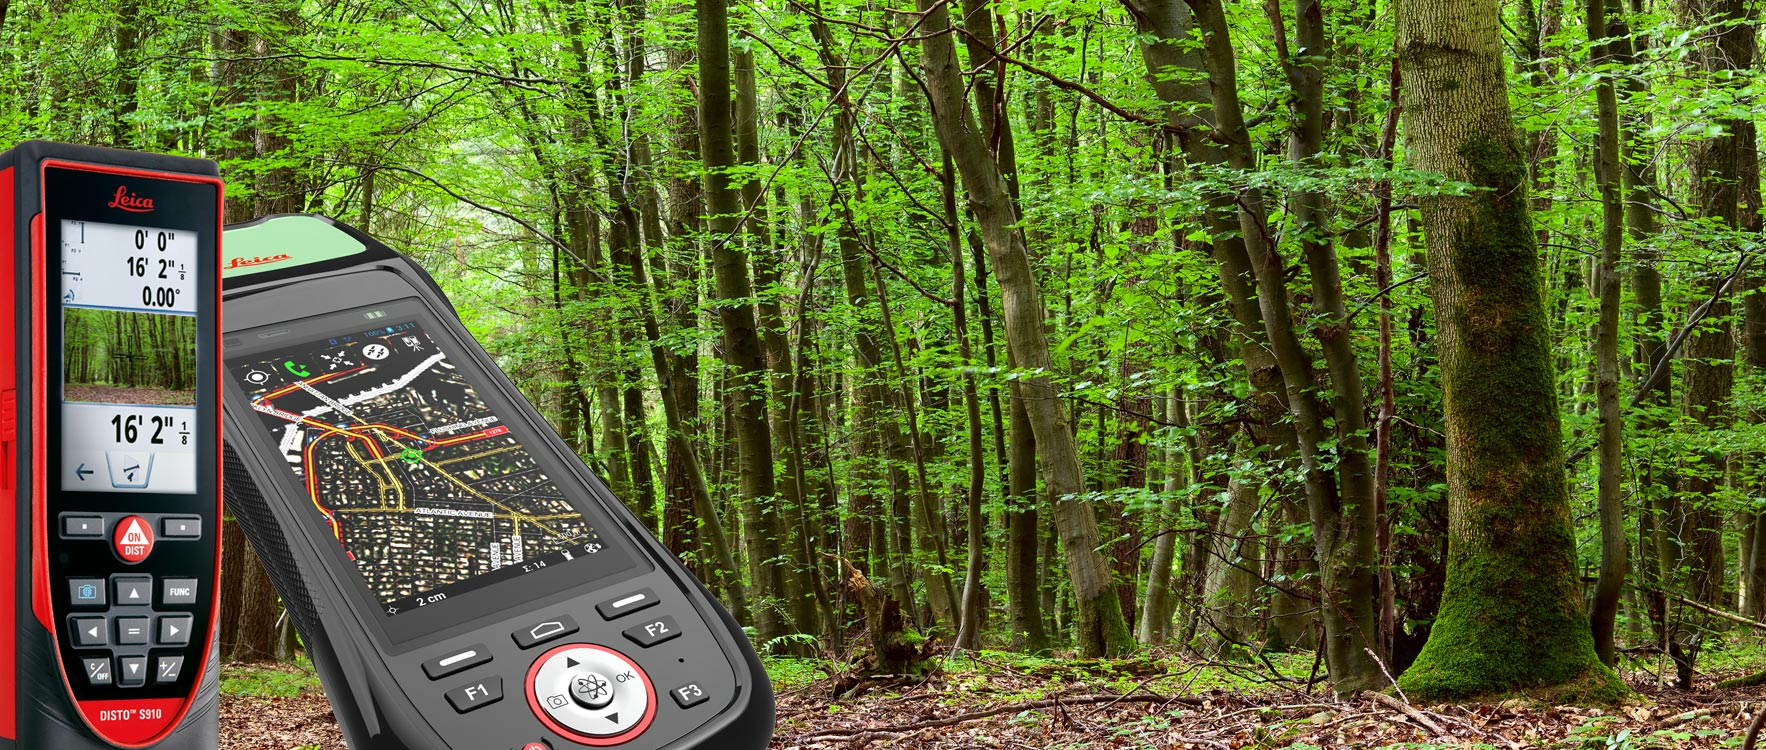 Leica Geosystems Forestry Solutions - Capture Natural Surface